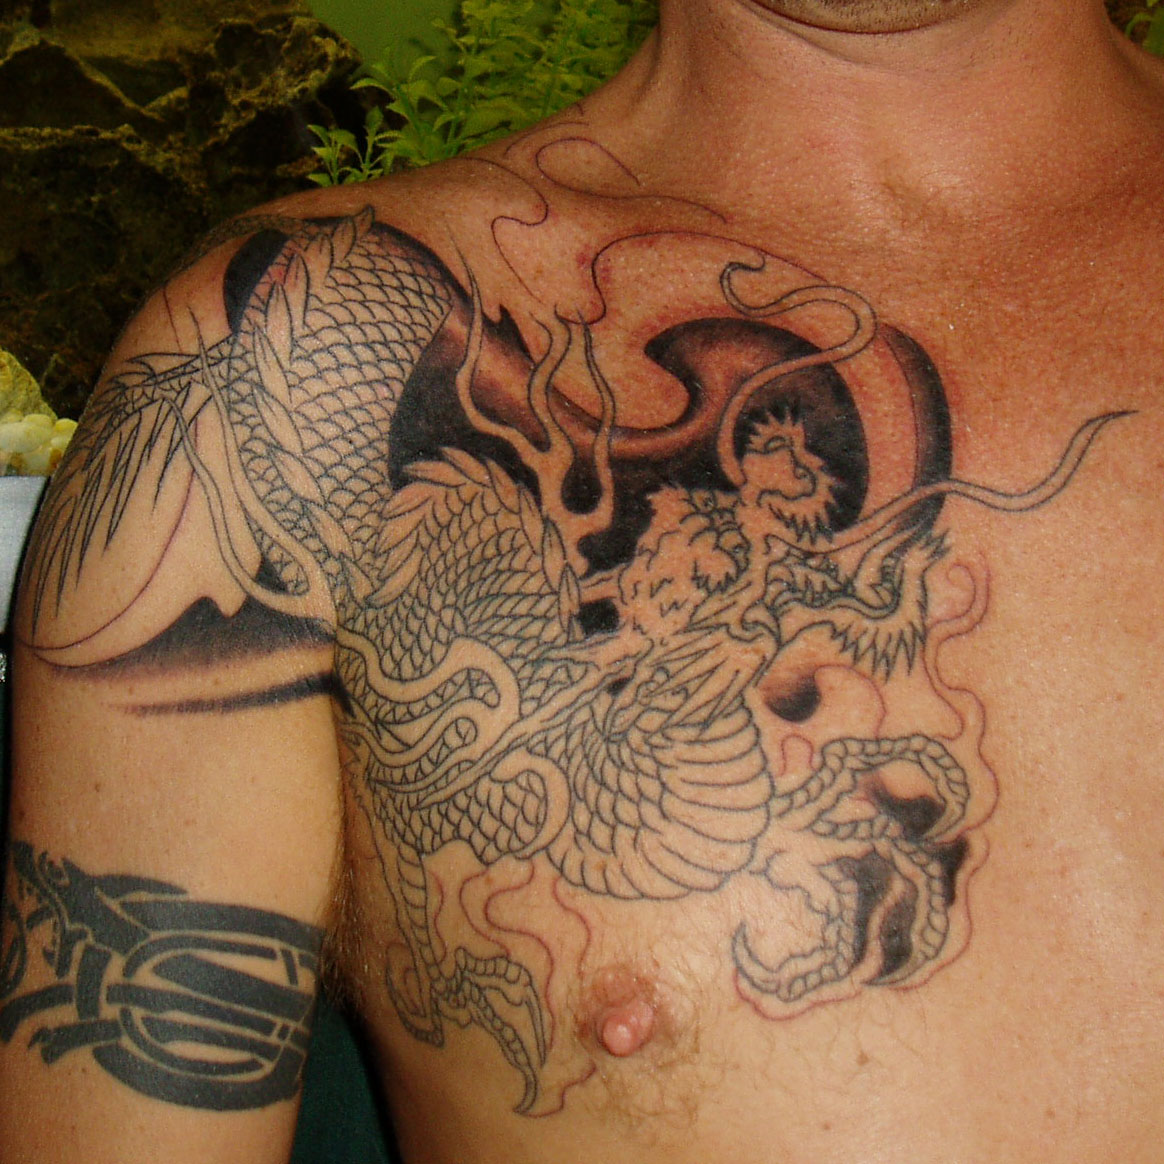 Tattoo Designs Japanese Names: Image Gallary 9: Beautiful Japanese Dragon Tattoo Designs